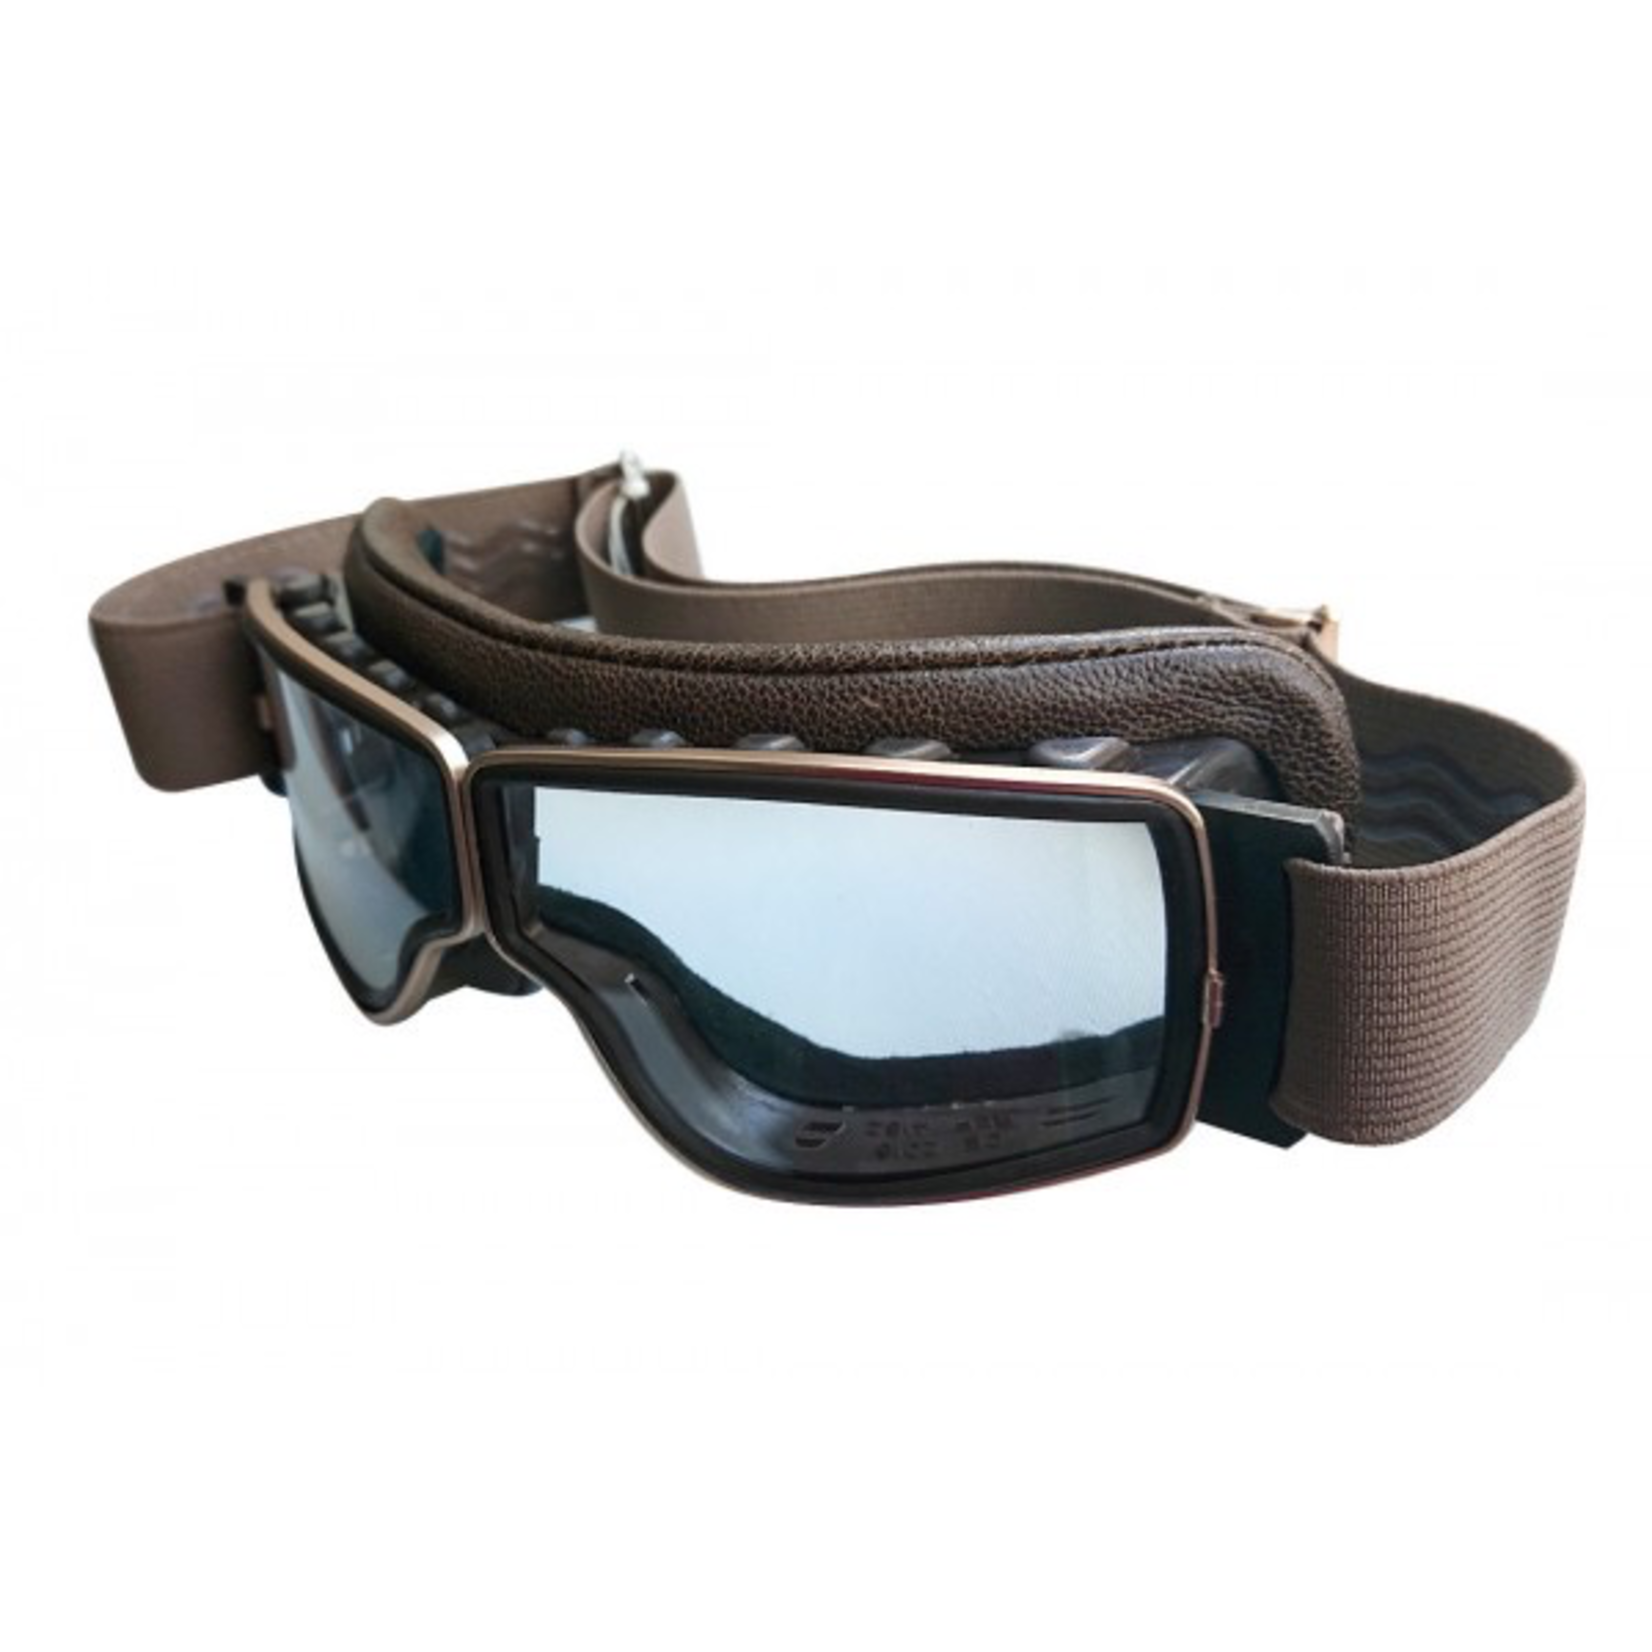 Lifestyle Goggles, Aviator T2 Brown/Gold